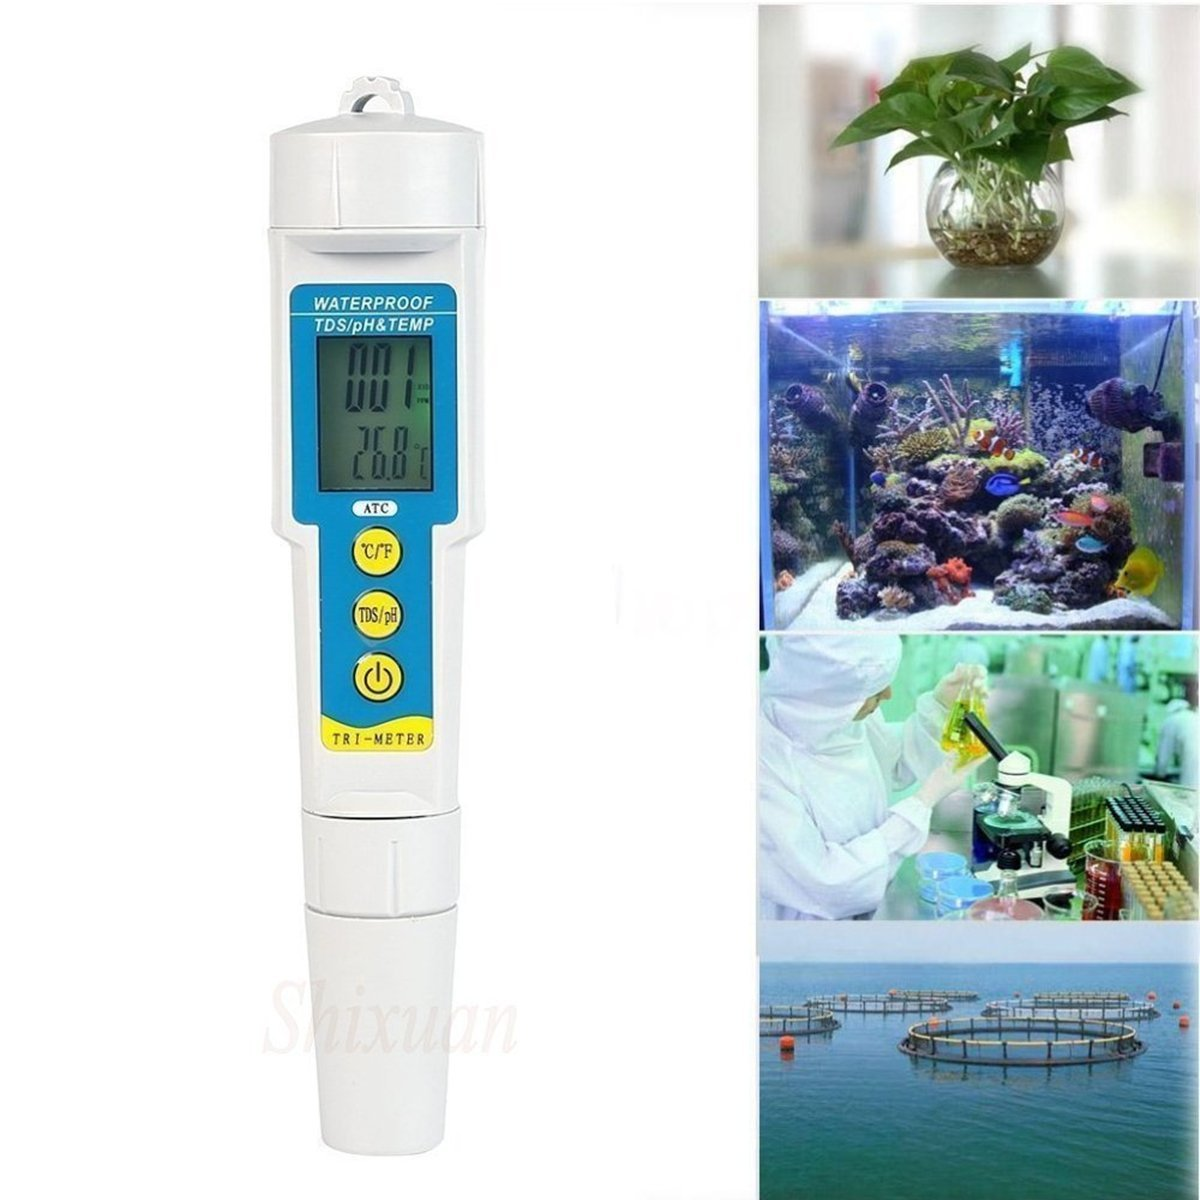 Digital Water Quality TDS Tester - QIYAT 3 in 1 PH Temp TDS Water Meter High Accuracy Quality Tester PPM Pen Resolution Range +/- 0.1 PH Value for Drinking Water, Aquariums, etc. (986)